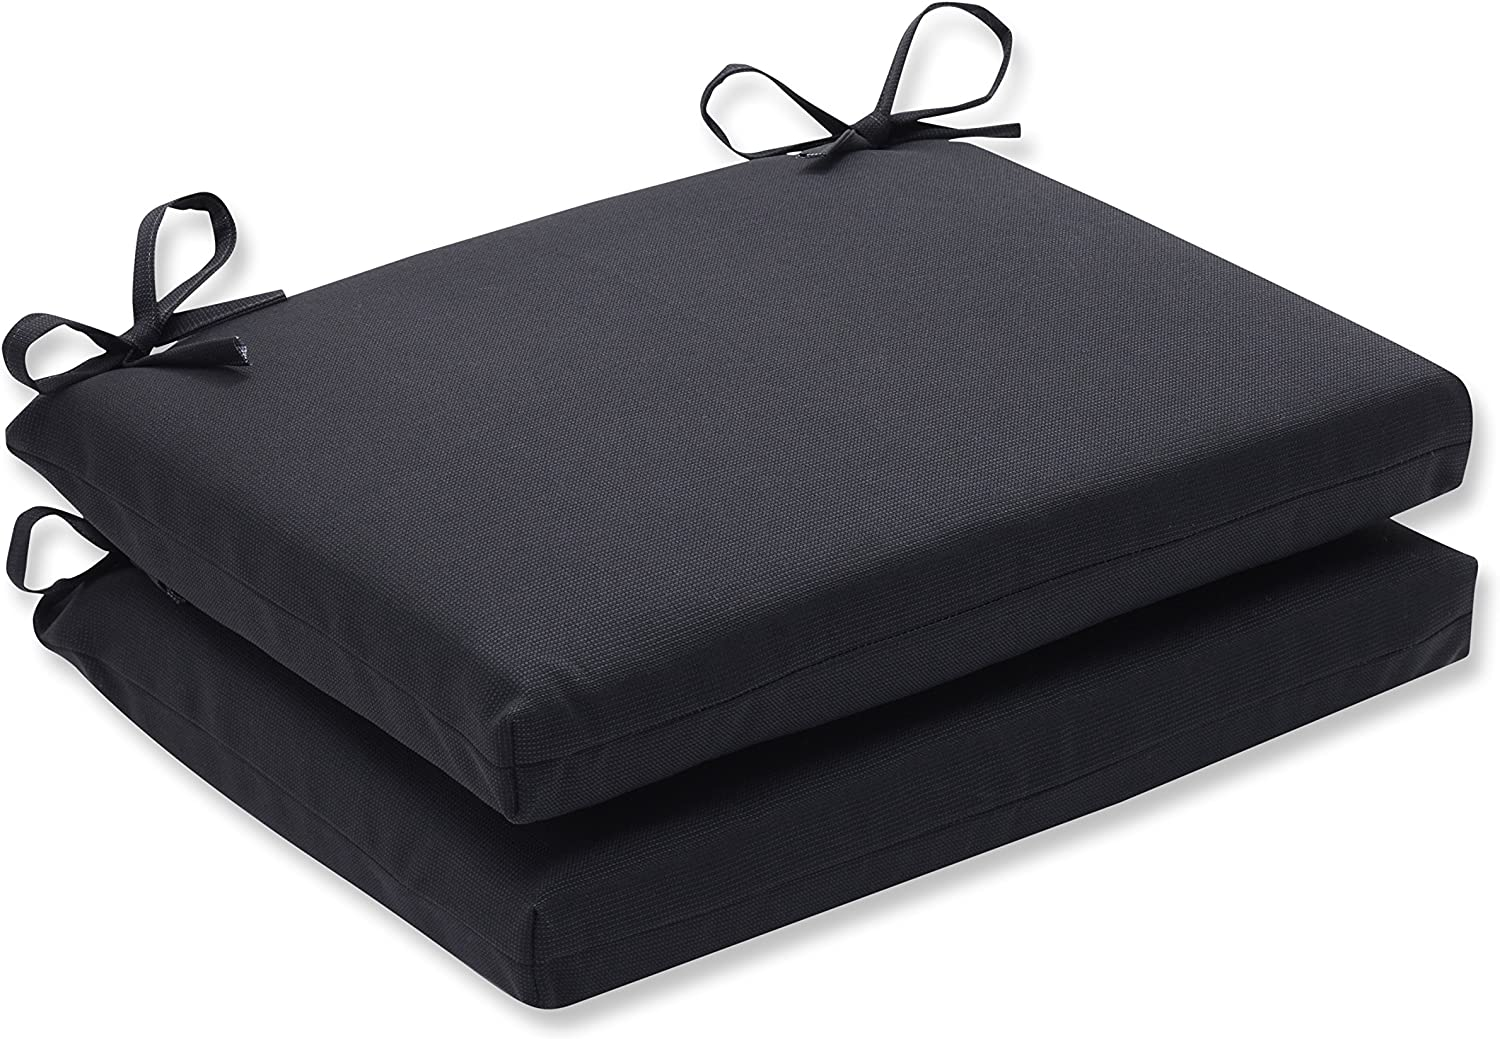 Pillow Perfect Indoor Outdoor Fresco Squared Seat Cushion, Set of 2, 18.5 in. L X 16 in. W X 3 in. D, Black